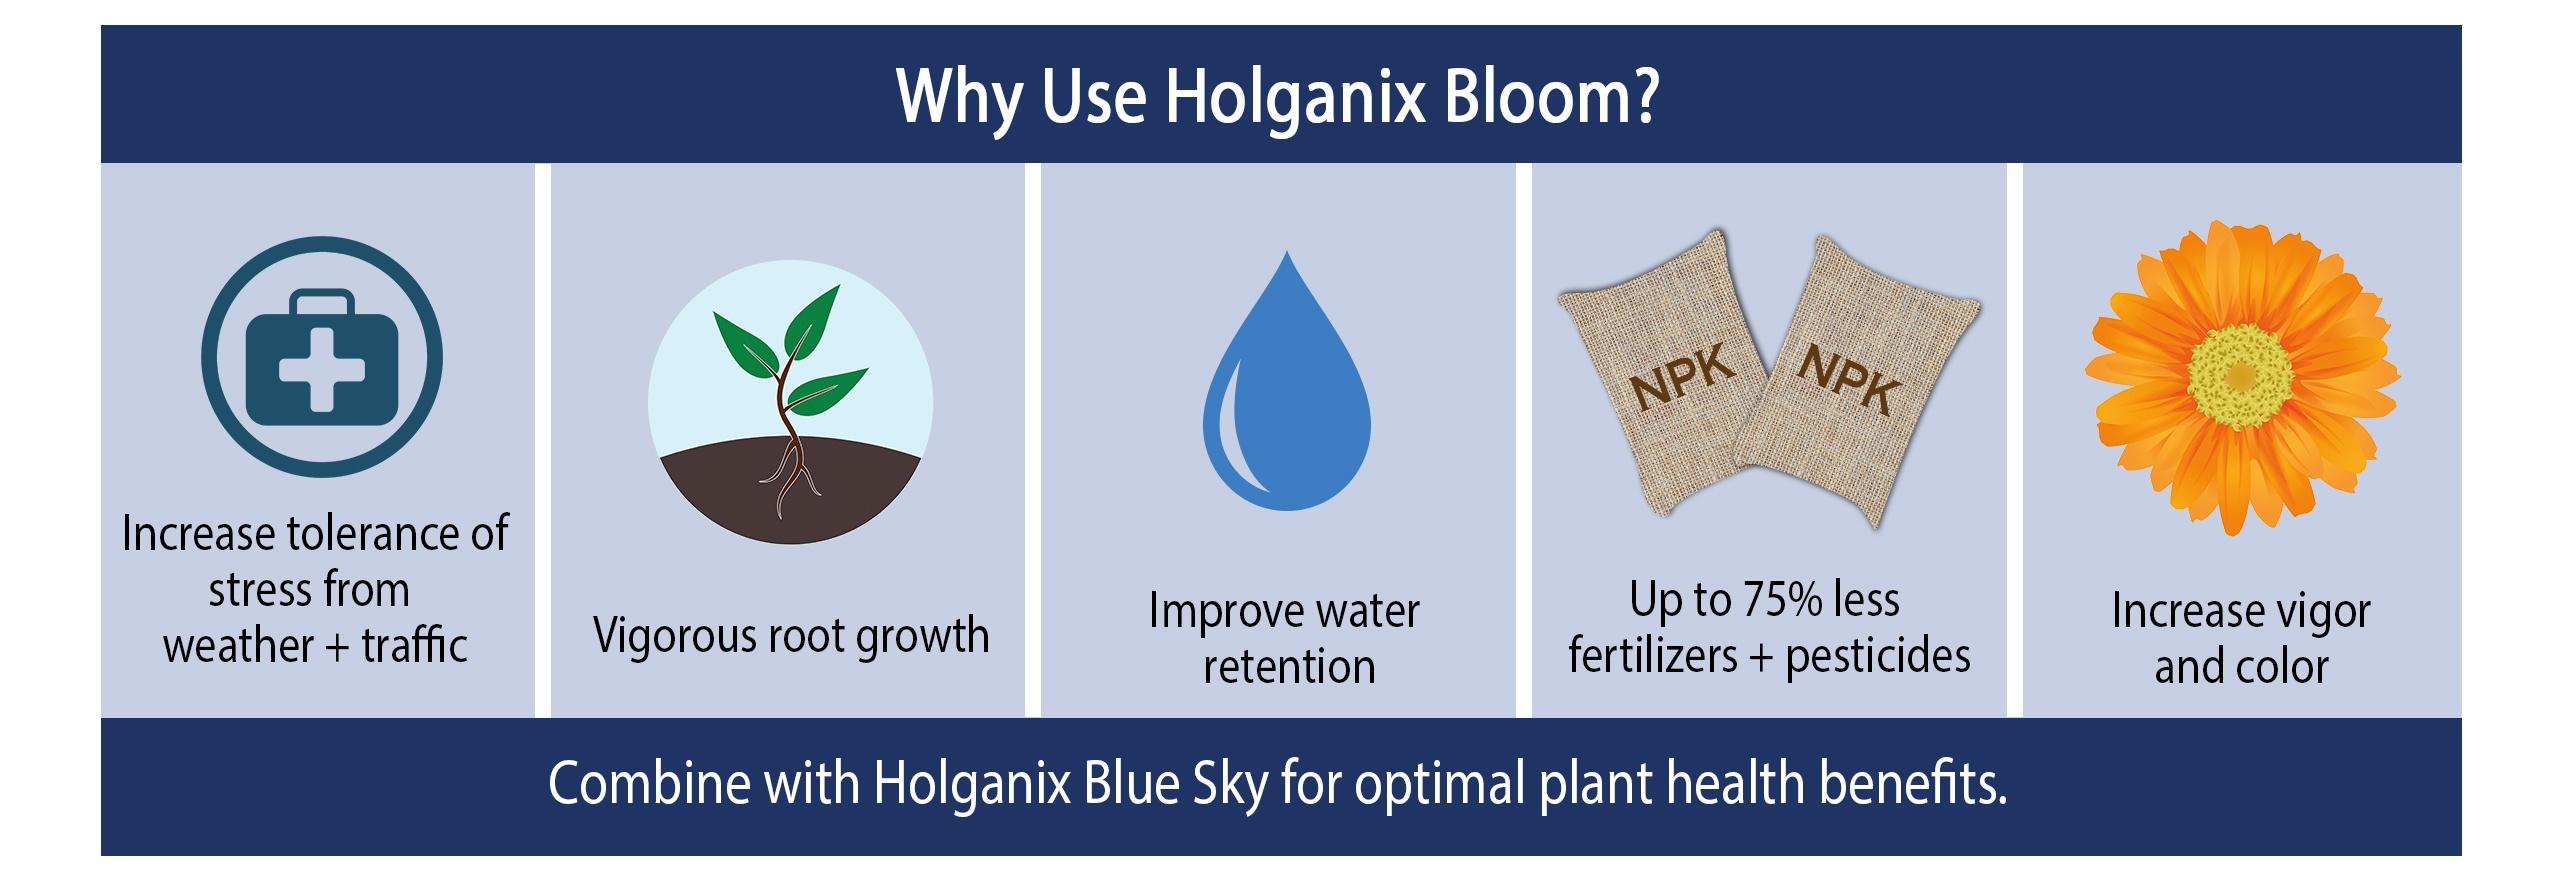 WA Why use Holganix bloom.jpg